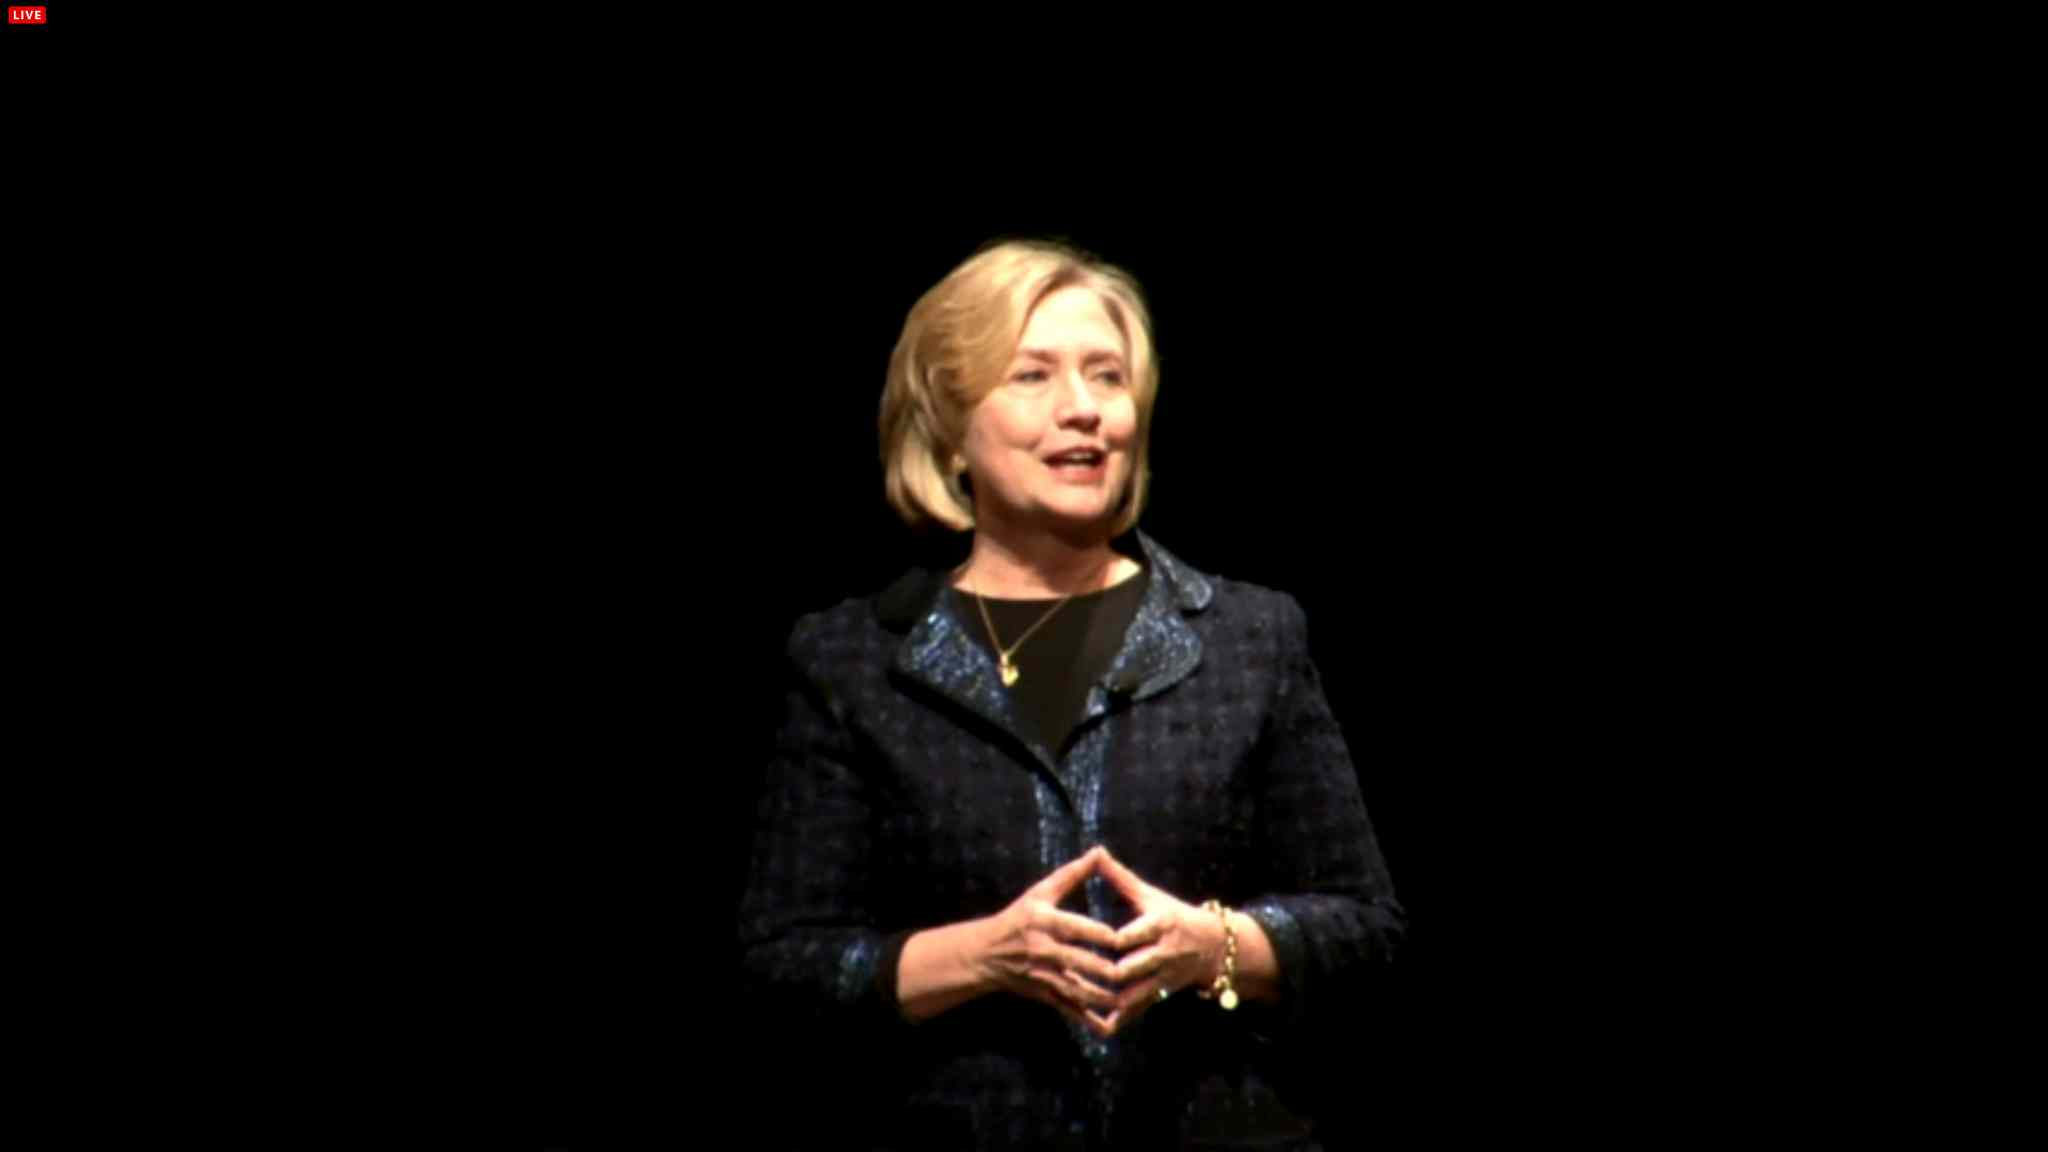 Hillary Rodham Clinton, former U. S. Secretary of State, speaks during the Global Perspectives event at the RBC Convention Centre Wednesday afternoon.